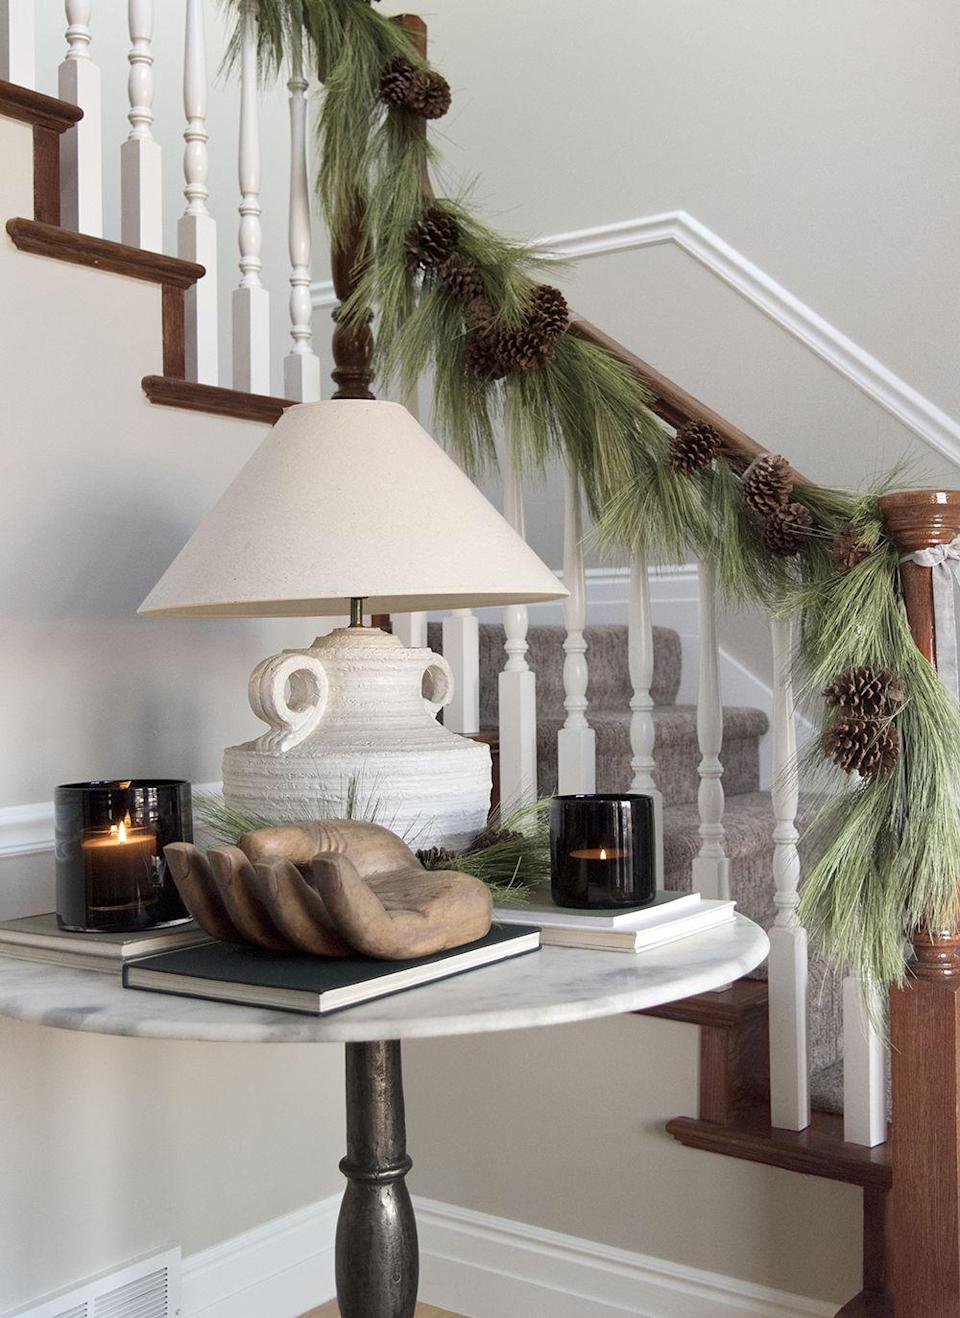 """<p>Long pine needle garland makes a stunning statement on stairs, especially when you add real pine cones. You could also do this with real roping. </p><p><strong>Get the tutorial at <a href=""""https://roomfortuesday.com/2020-holiday-home-tour/"""" rel=""""nofollow noopener"""" target=""""_blank"""" data-ylk=""""slk:Room for Tuesday."""" class=""""link rapid-noclick-resp"""">Room for Tuesday.</a></strong></p><p><a class=""""link rapid-noclick-resp"""" href=""""https://www.amazon.com/RAZ-Imports-Greenery-Needle-Garland/dp/B085LQC8PY/ref=sr_1_6?dchild=1&keywords=long+pine+needle+garland&qid=1633171537&sr=8-6&tag=syn-yahoo-20&ascsubtag=%5Bartid%7C2164.g.37723896%5Bsrc%7Cyahoo-us"""" rel=""""nofollow noopener"""" target=""""_blank"""" data-ylk=""""slk:SHOP LONG PINE NEEDLE GARLAND"""">SHOP LONG PINE NEEDLE GARLAND</a></p>"""